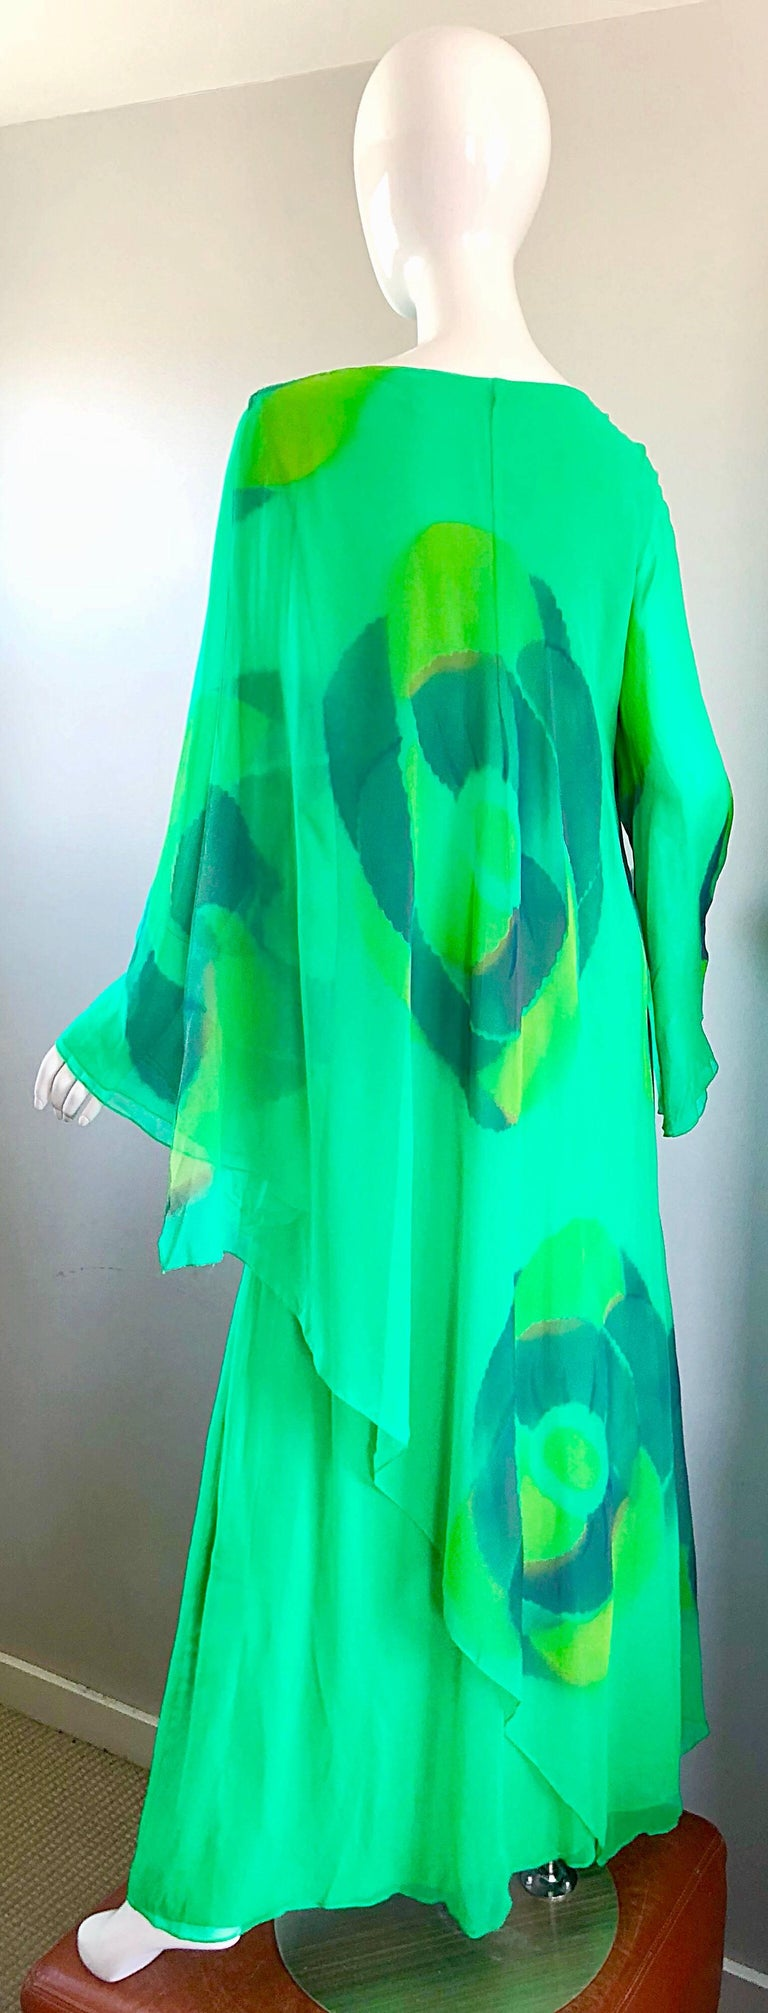 Vintage Travillia Couture 1970s Hand Painted Kelly Green Silk Chiffon 70s Gown For Sale 3